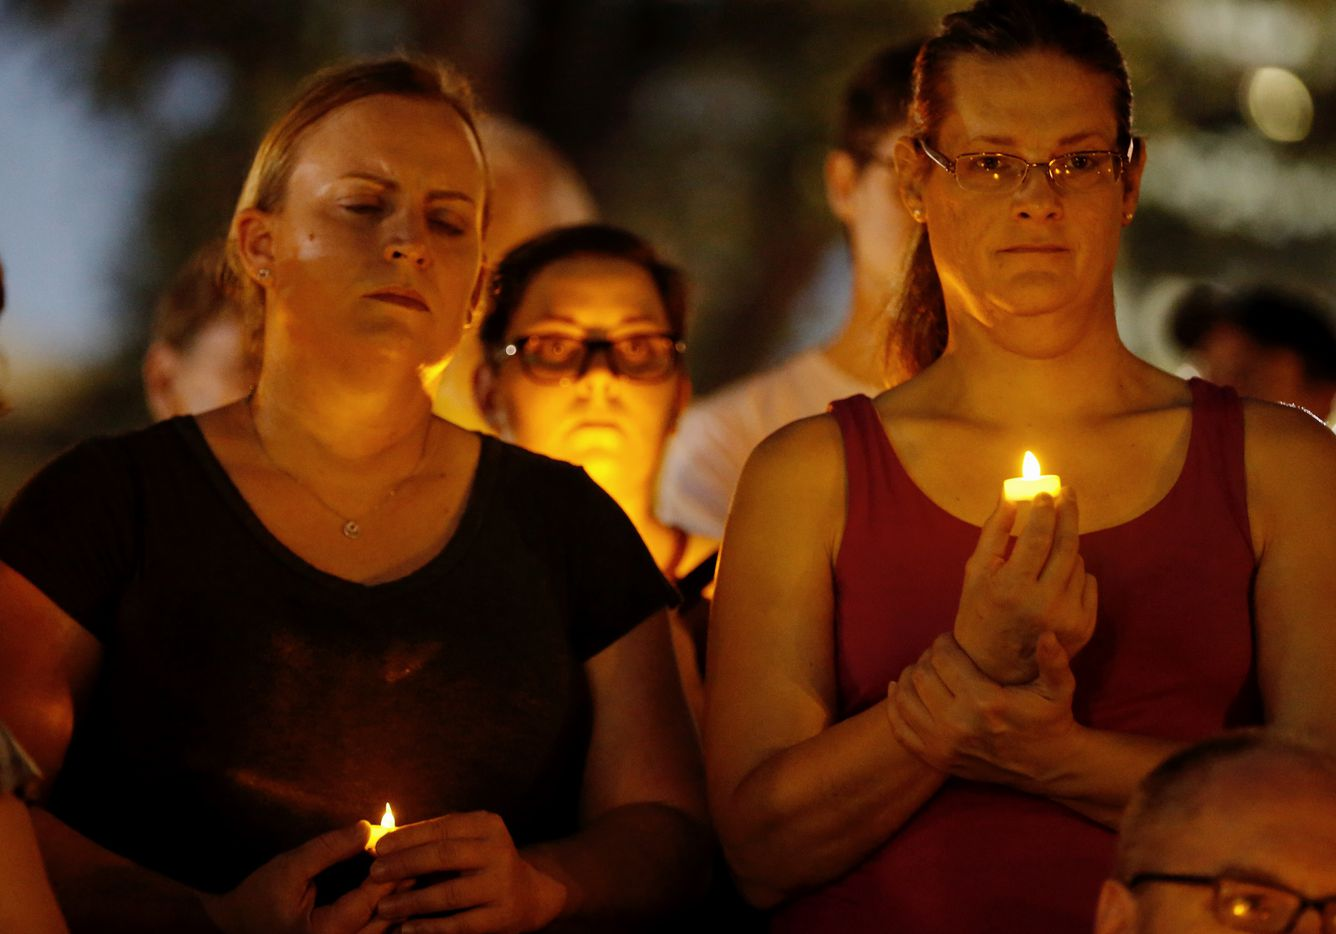 Leslie Decker (left) and Ashley Sheets attend a candlelight vigil in remembrance of Heather Heyer at Lee Park in Dallas on Sunday.